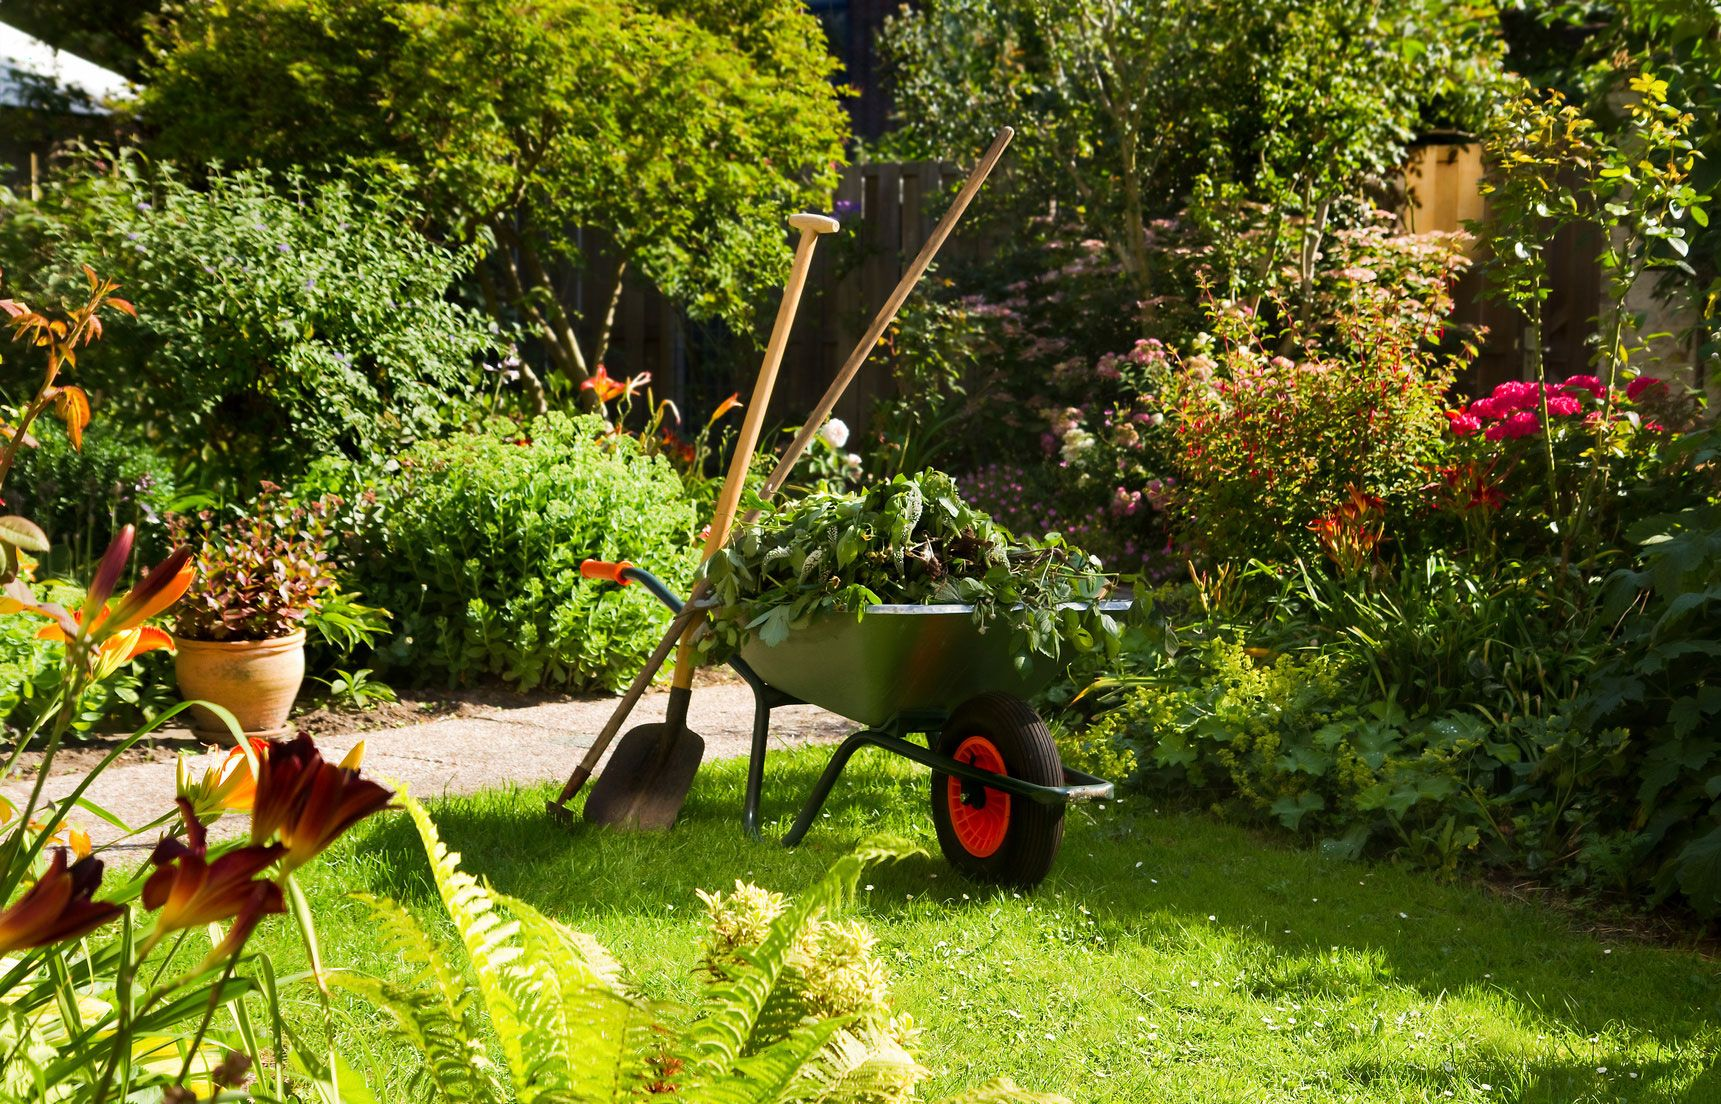 17 Best images about Gardening services on Pinterest   Gardens ...